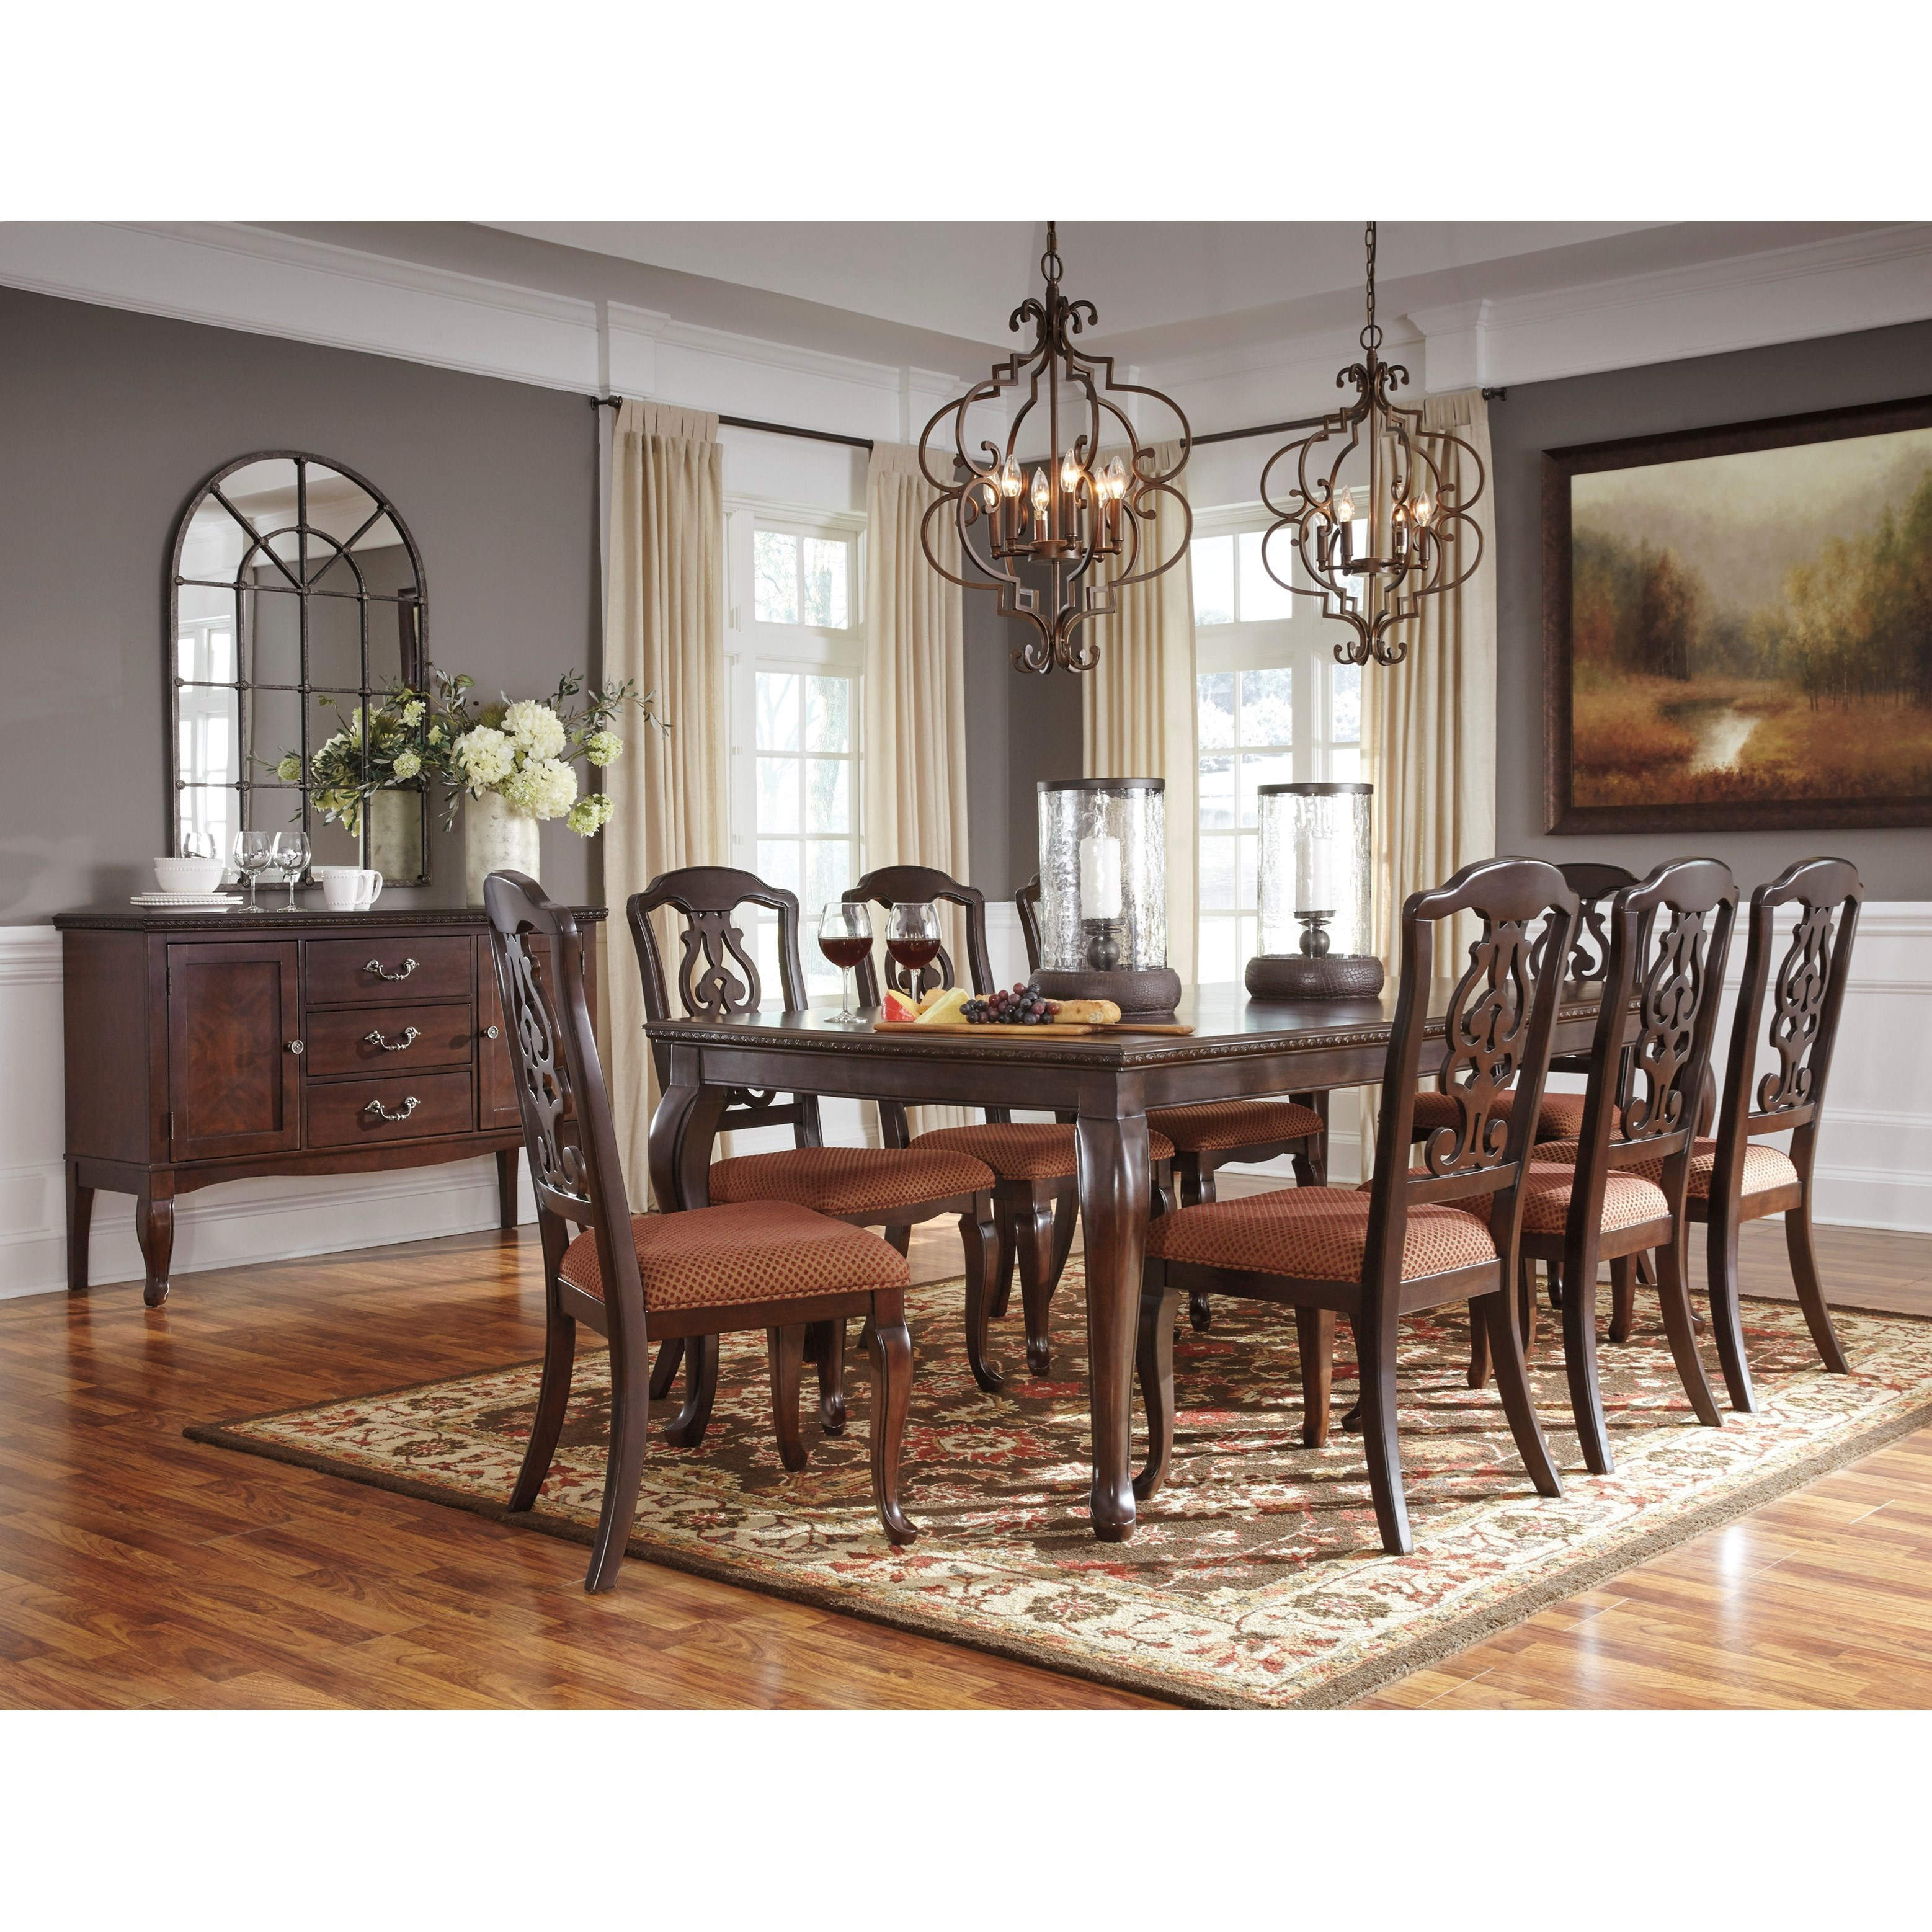 Signature Design by Ashley Gladdenville Formal Dining Room Group - Item Number: D578 Dining Room Group 4